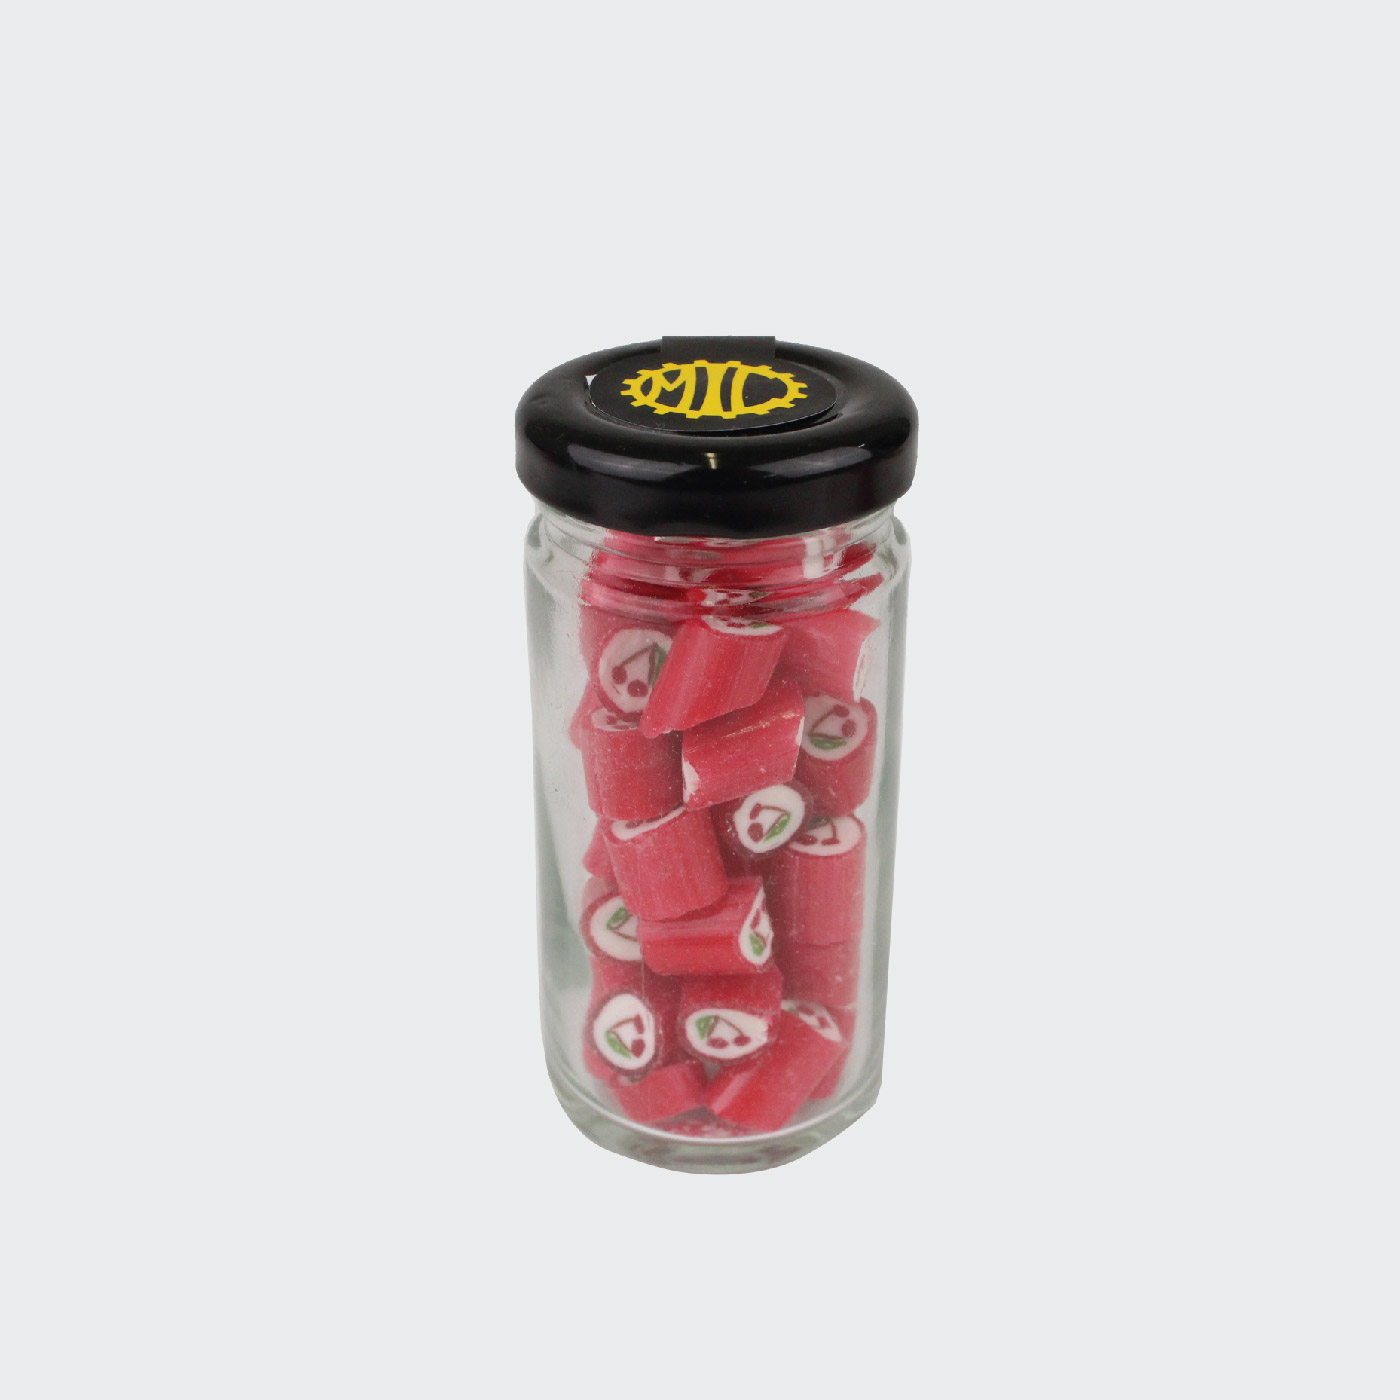 Tall Jar of Cherry (50g. Jar)